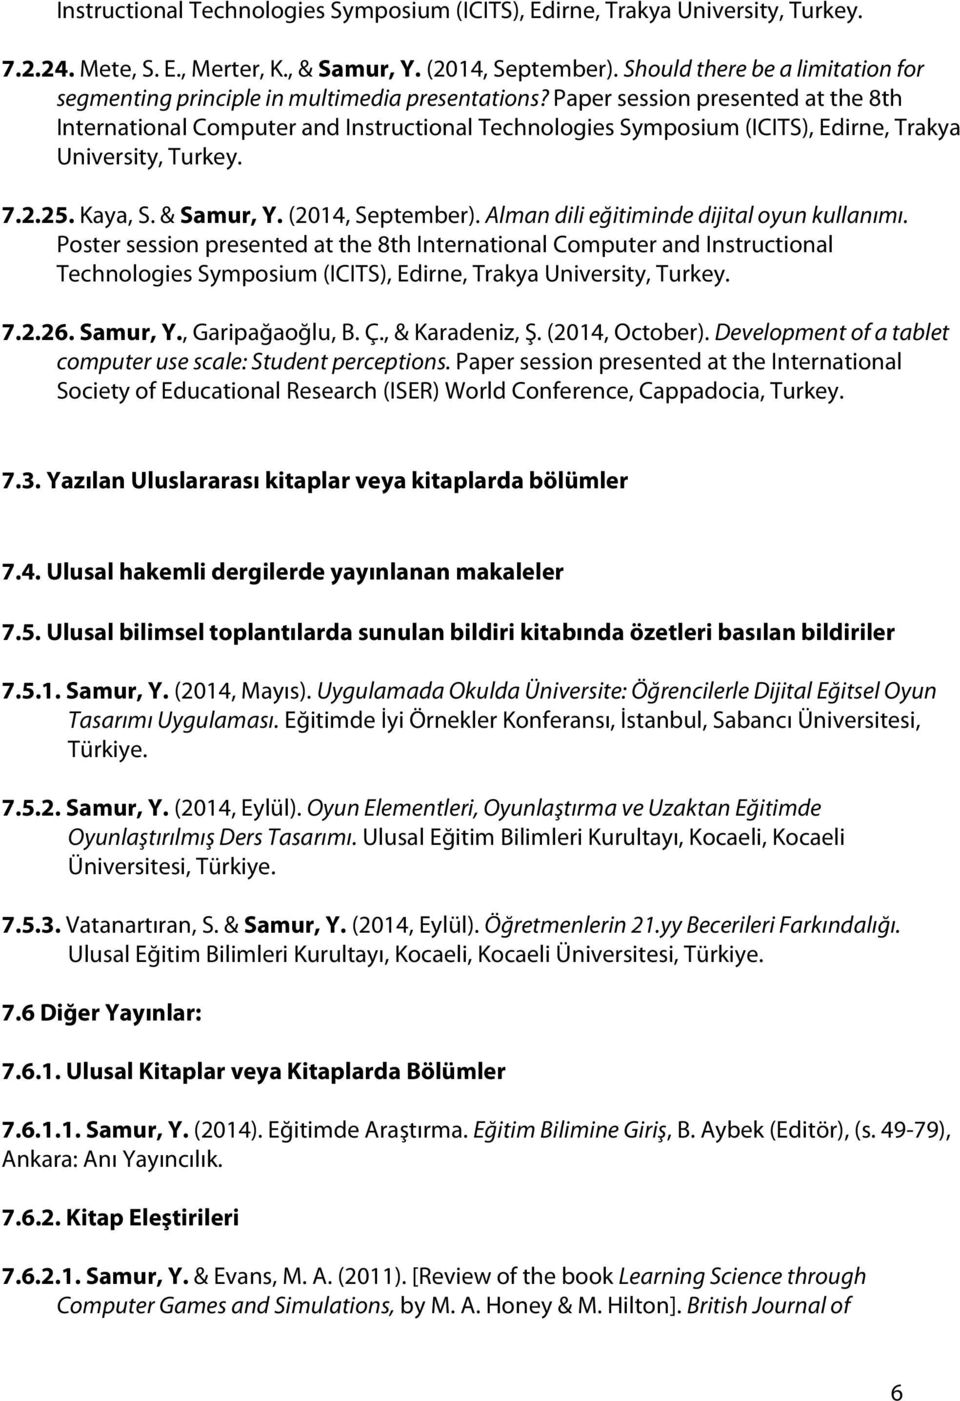 Paper session presented at the 8th International Computer and Instructional Technologies Symposium (ICITS), Edirne, Trakya University, Turkey. 7.2.25. Kaya, S. & Samur, Y. (2014, September).